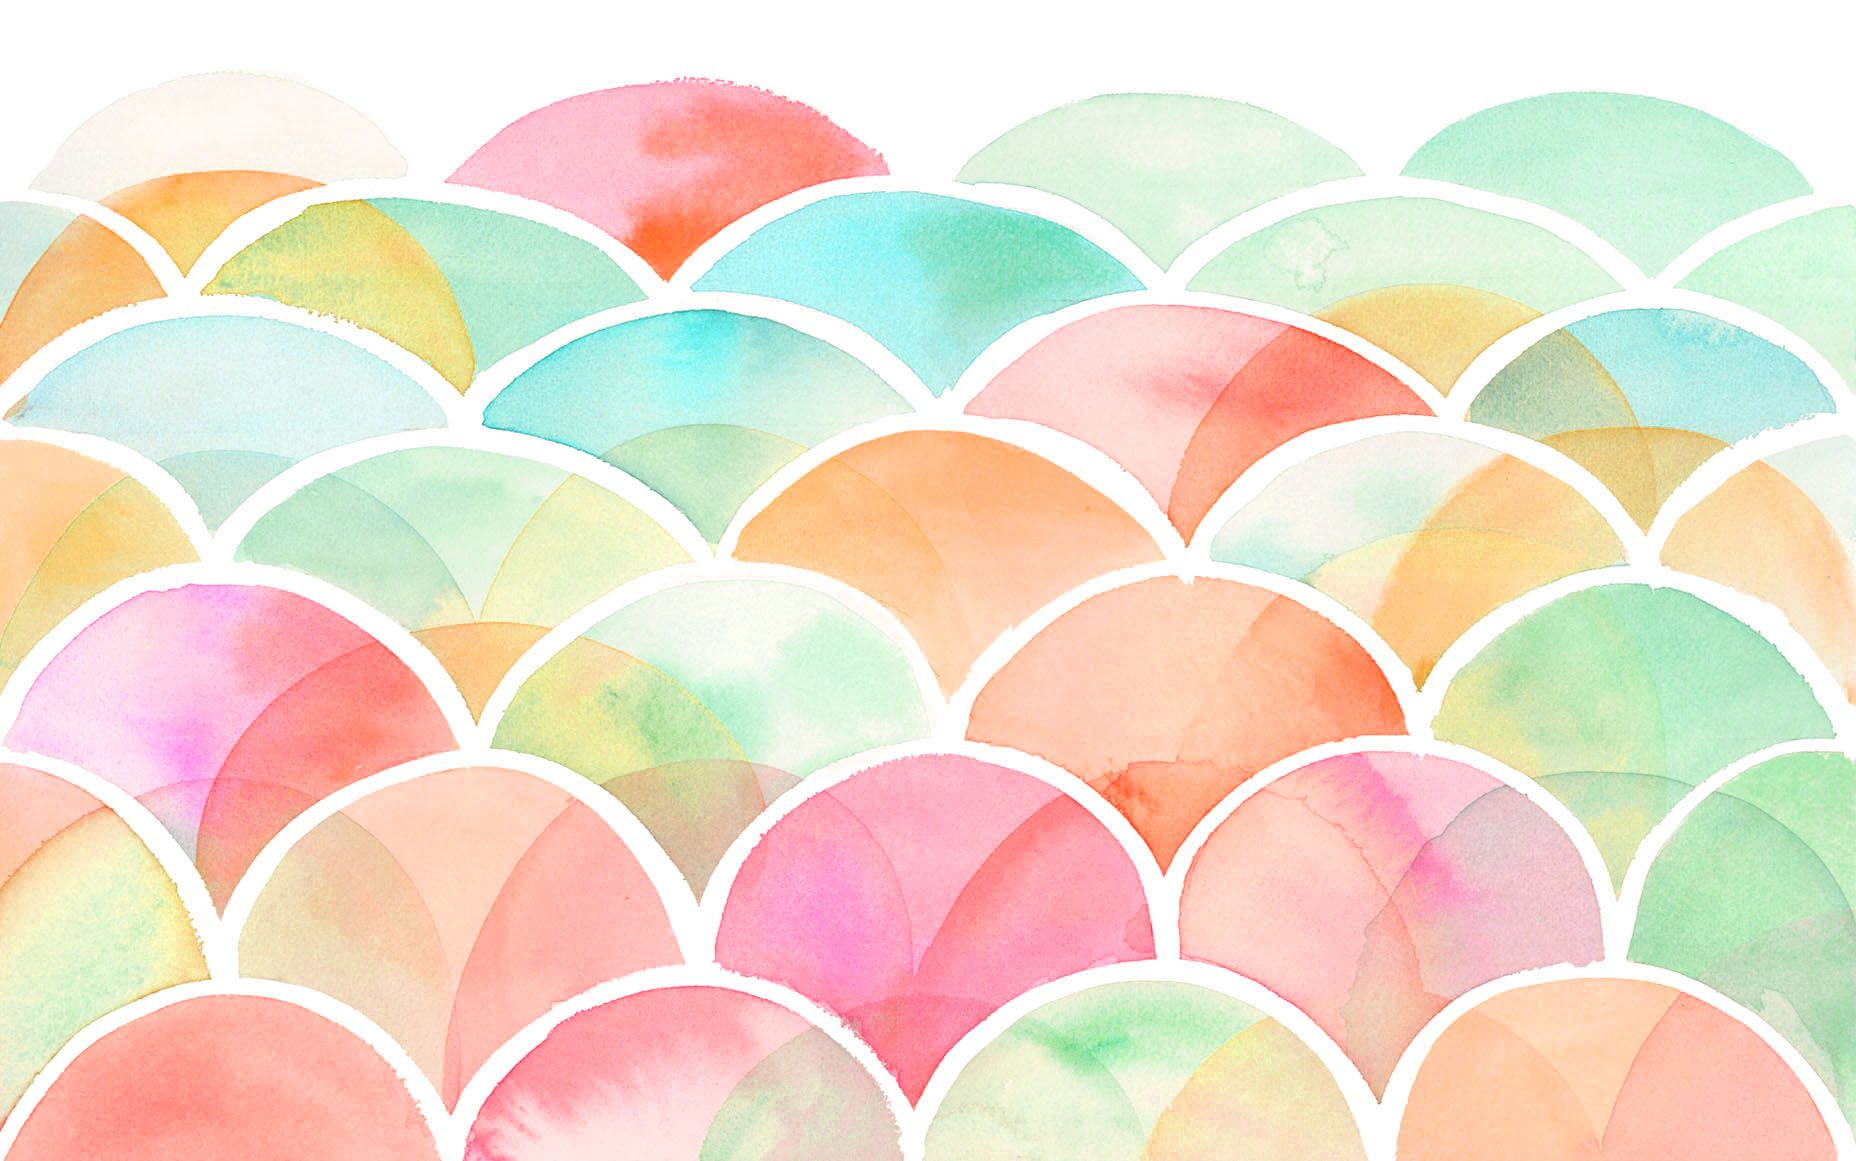 Love fest wallpaper backgrounds and desktop wallpapers on pinterest - Watercolor Background Buscar Con Google Watercolor